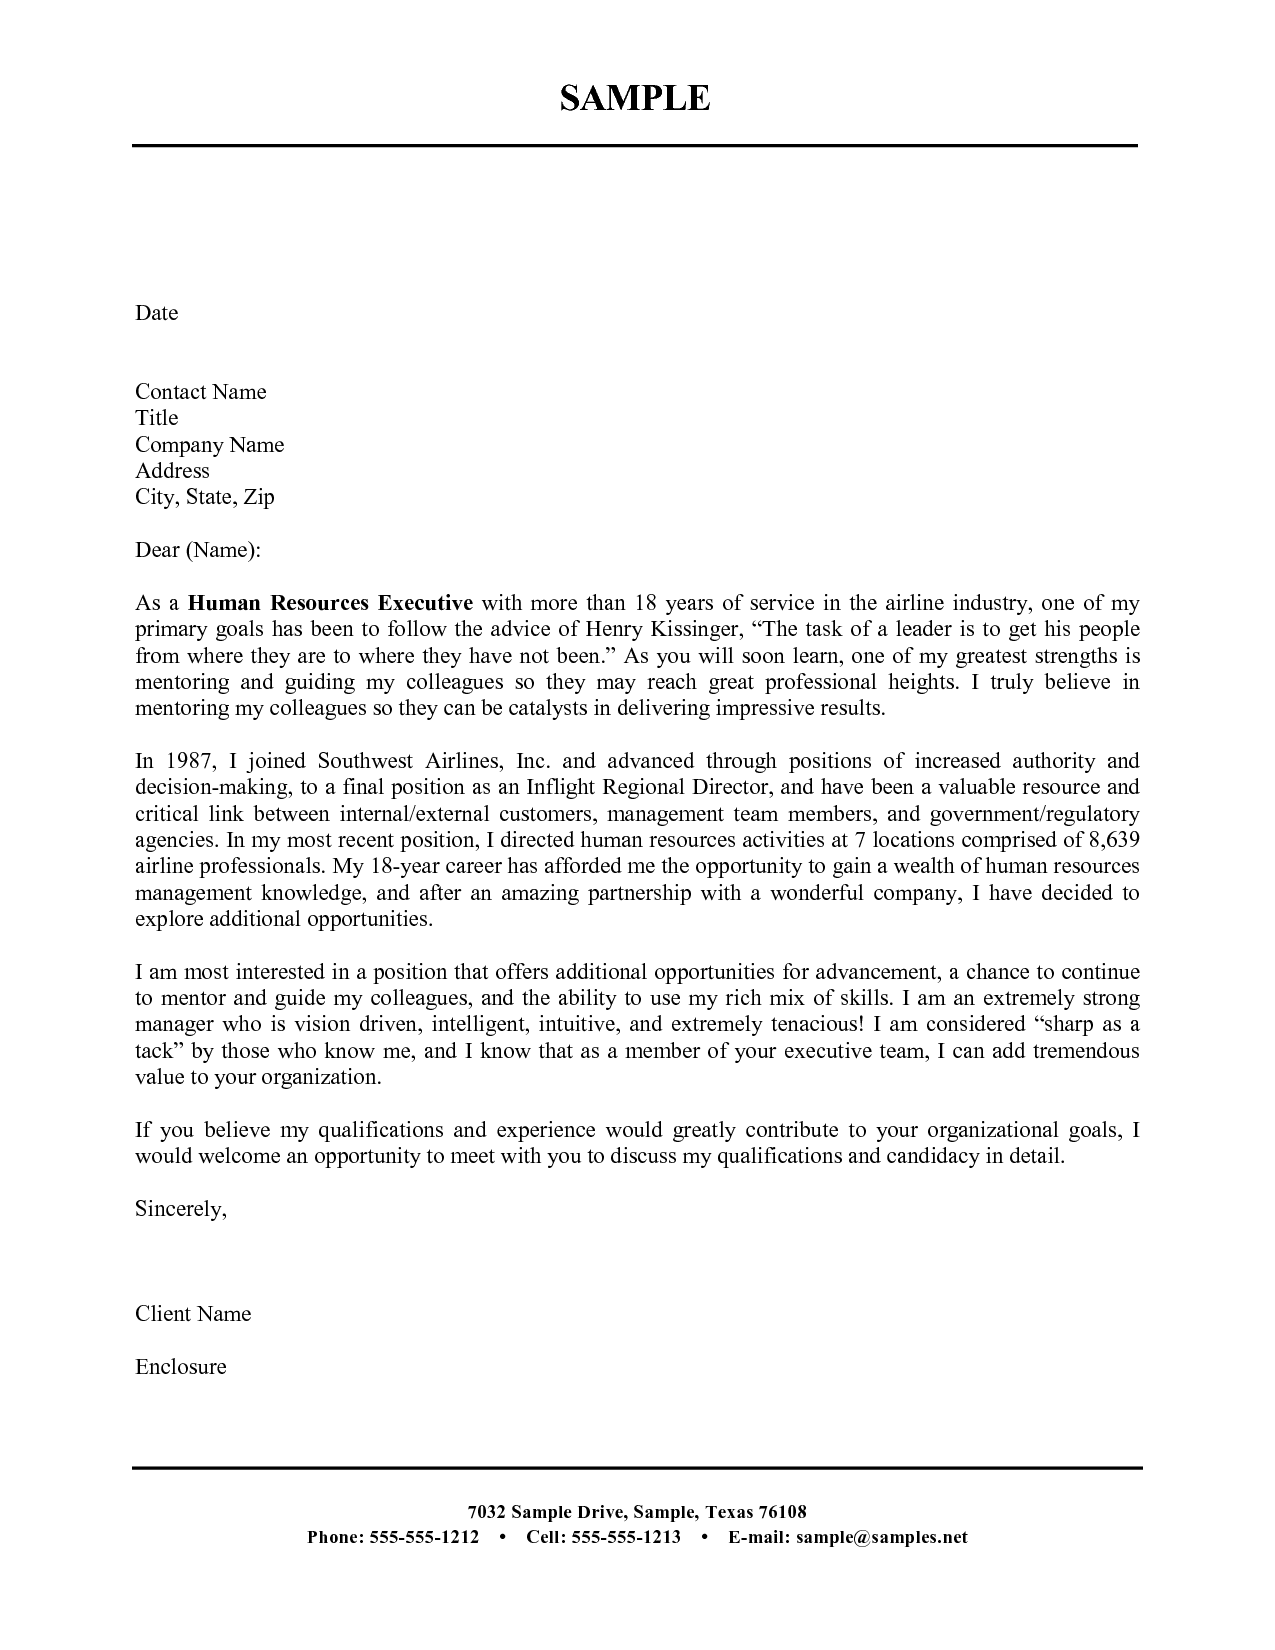 Ms Word Cover Letter TemplateCover Letter Template Application ...